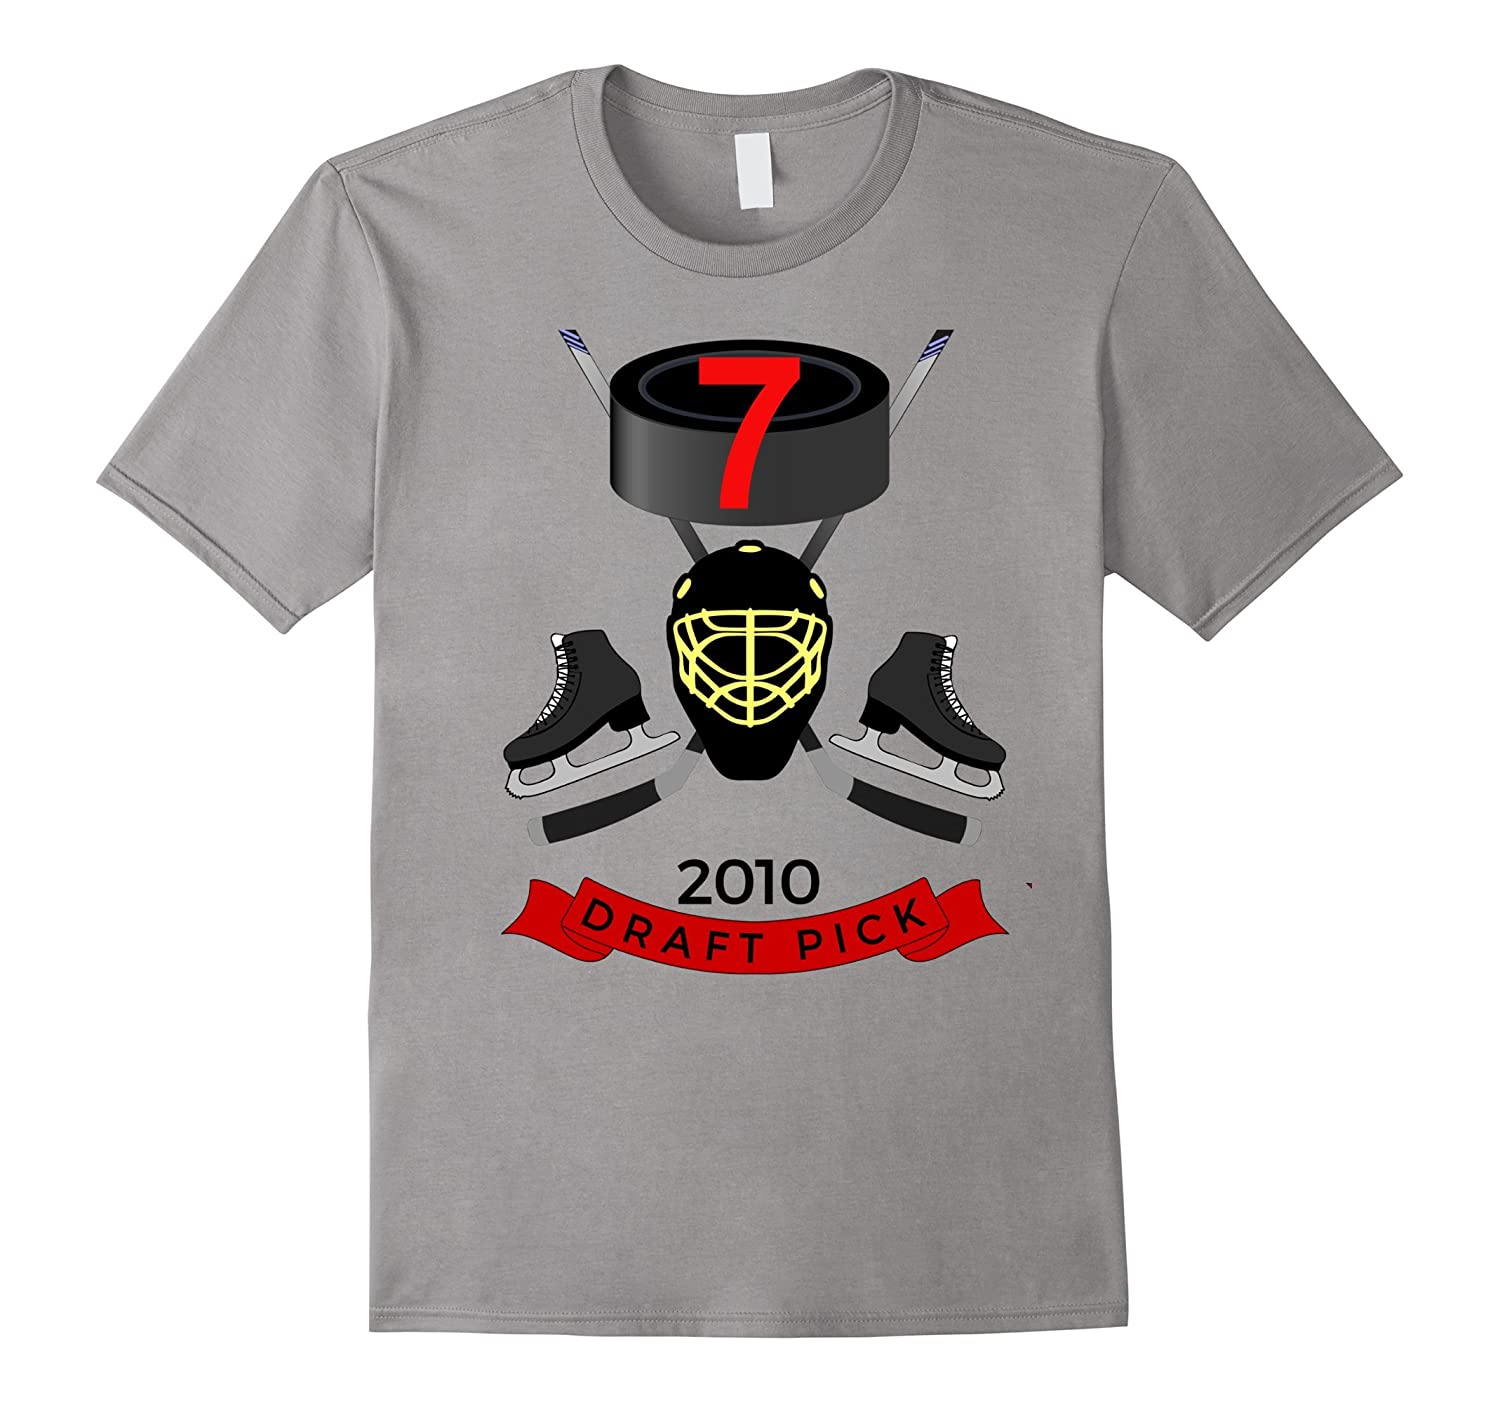 #7 Birthday TShirt - 2010 Draft Pick Hockey Birthday T-Shirt-TH